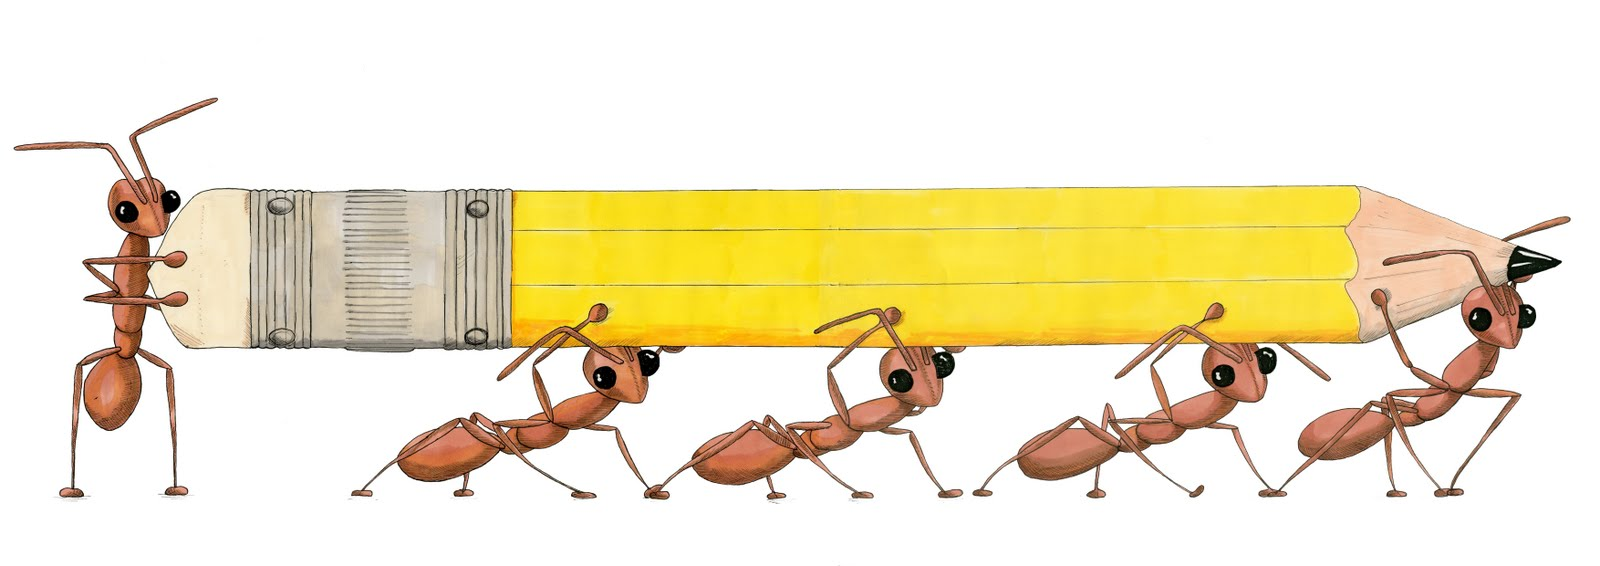 Ants clipart ants marching. Clip art n free